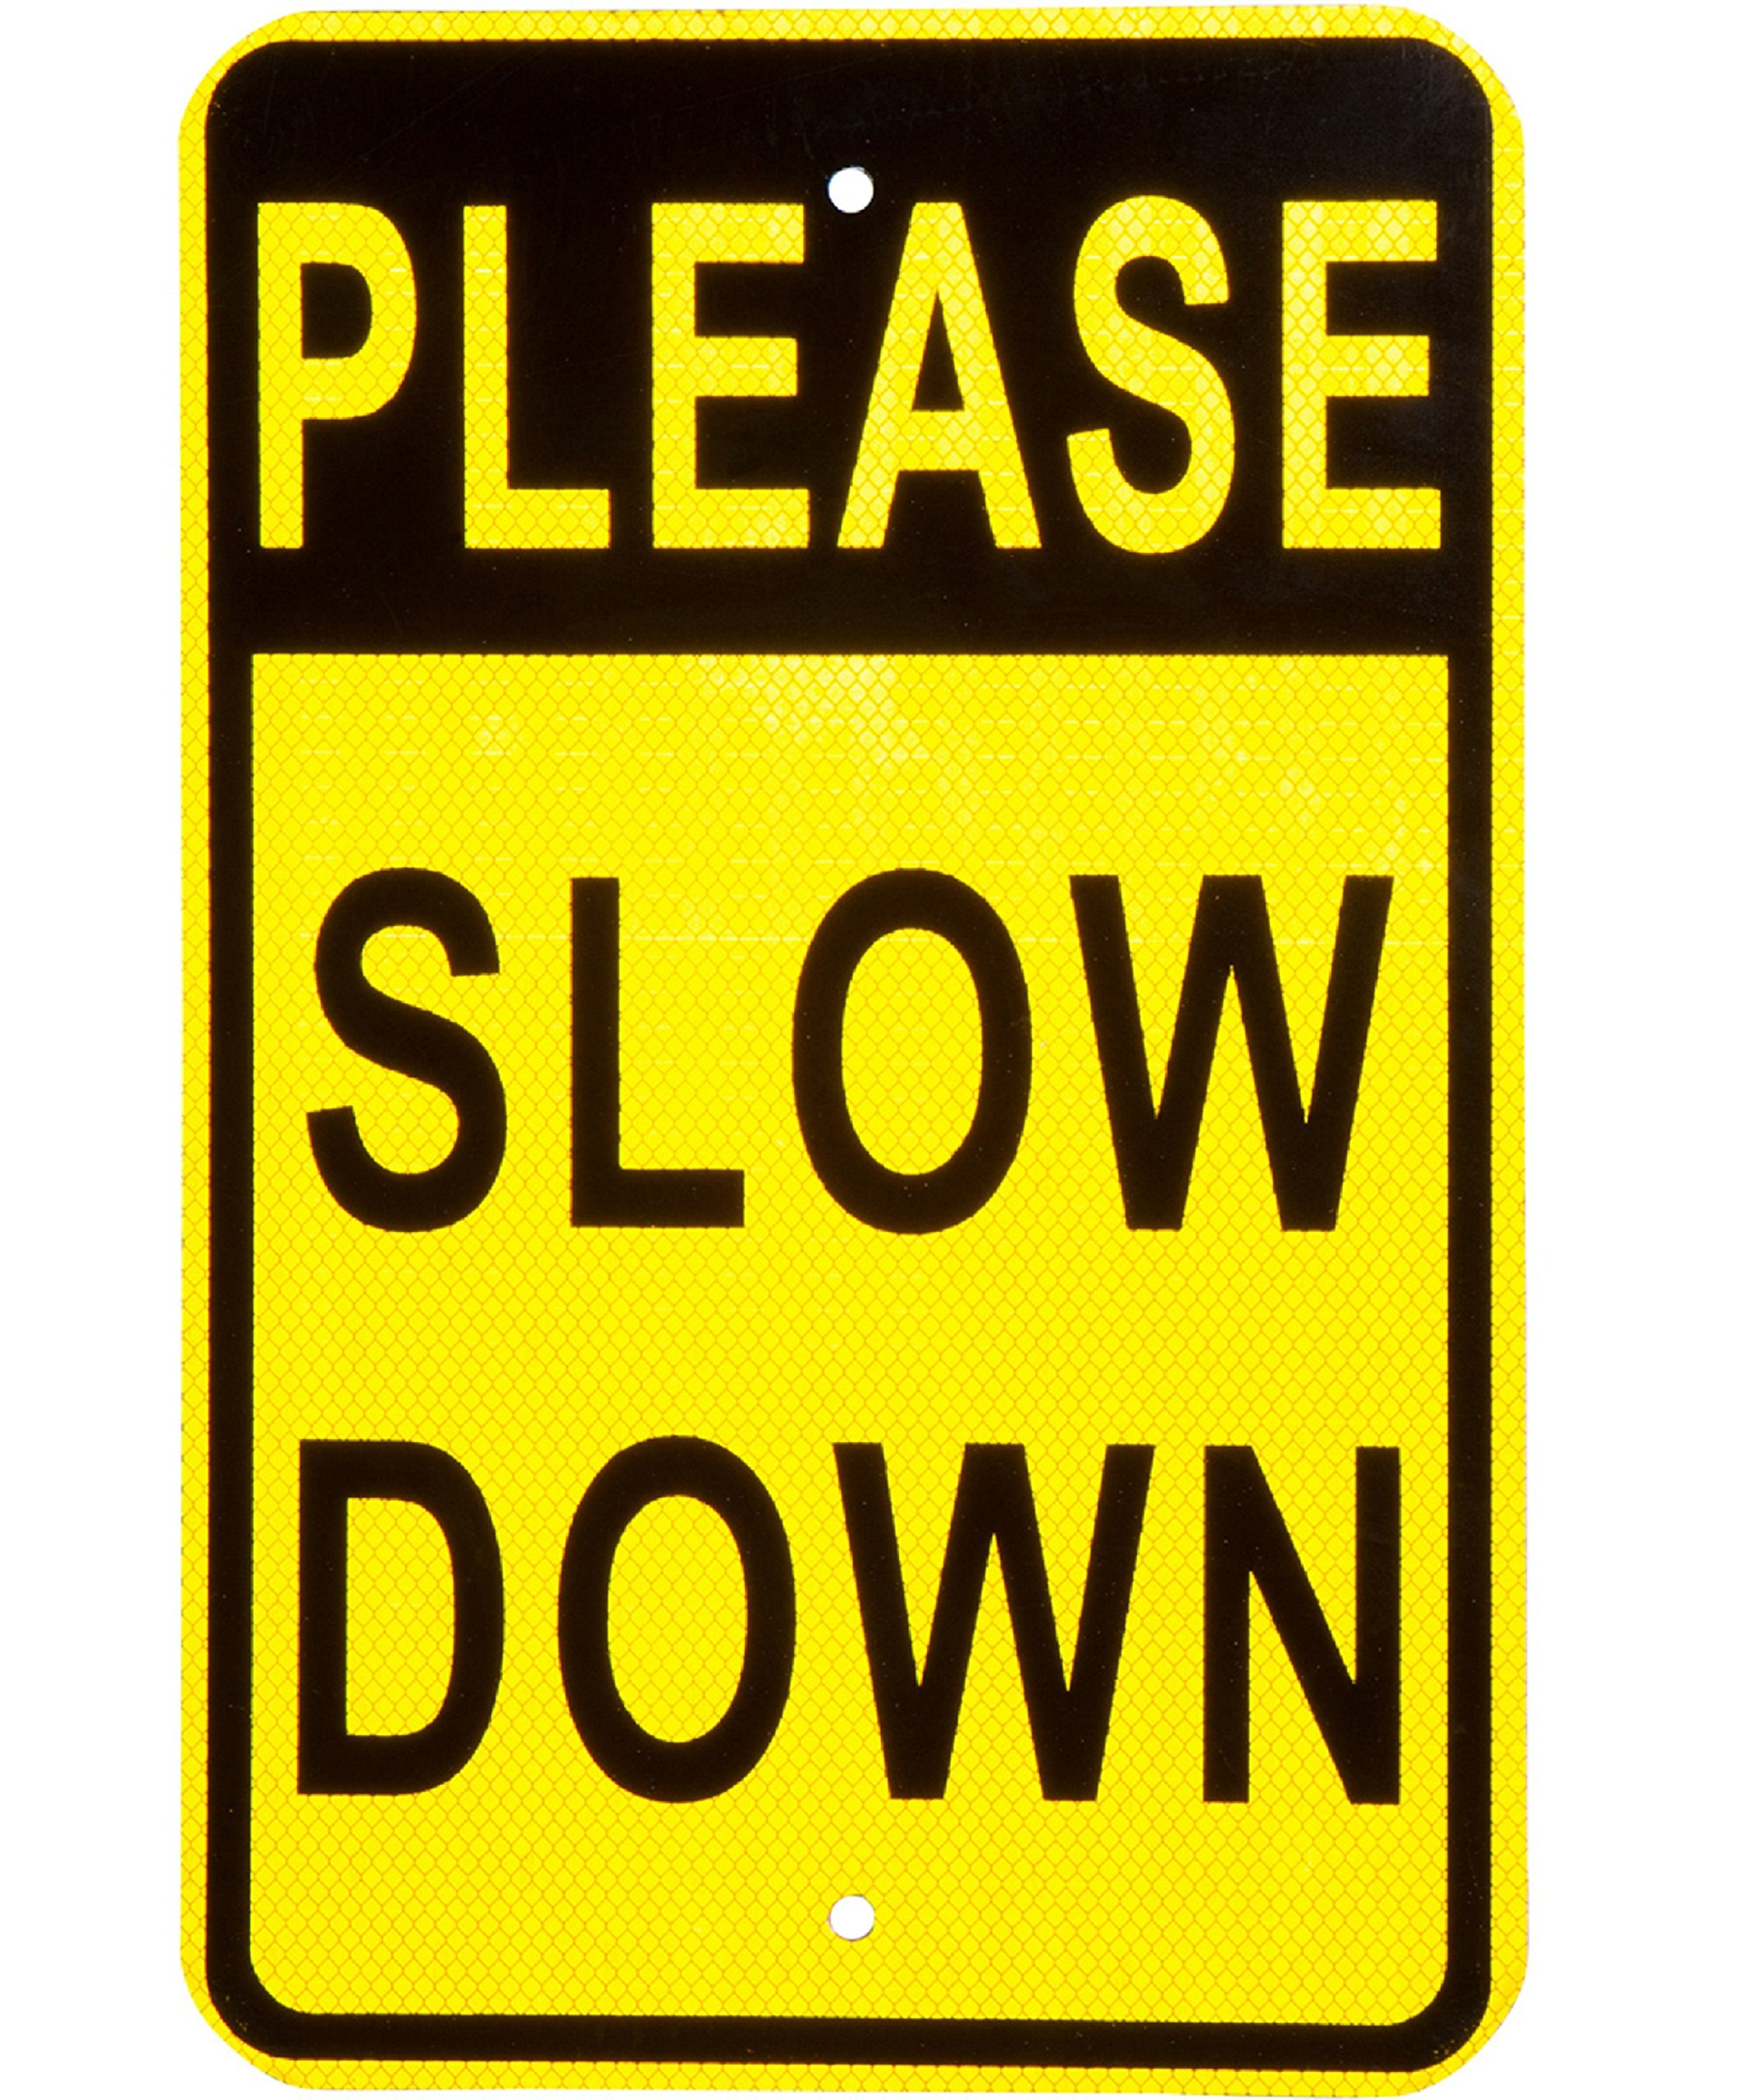 Please Slow Down Sign Heavy Duty Aluminum and Reflective Face Great for Neighborhood Streets and Yard Signage for Children Playing Increase Street Safety to Prevent Speeding Or Warn Drivers of Pets